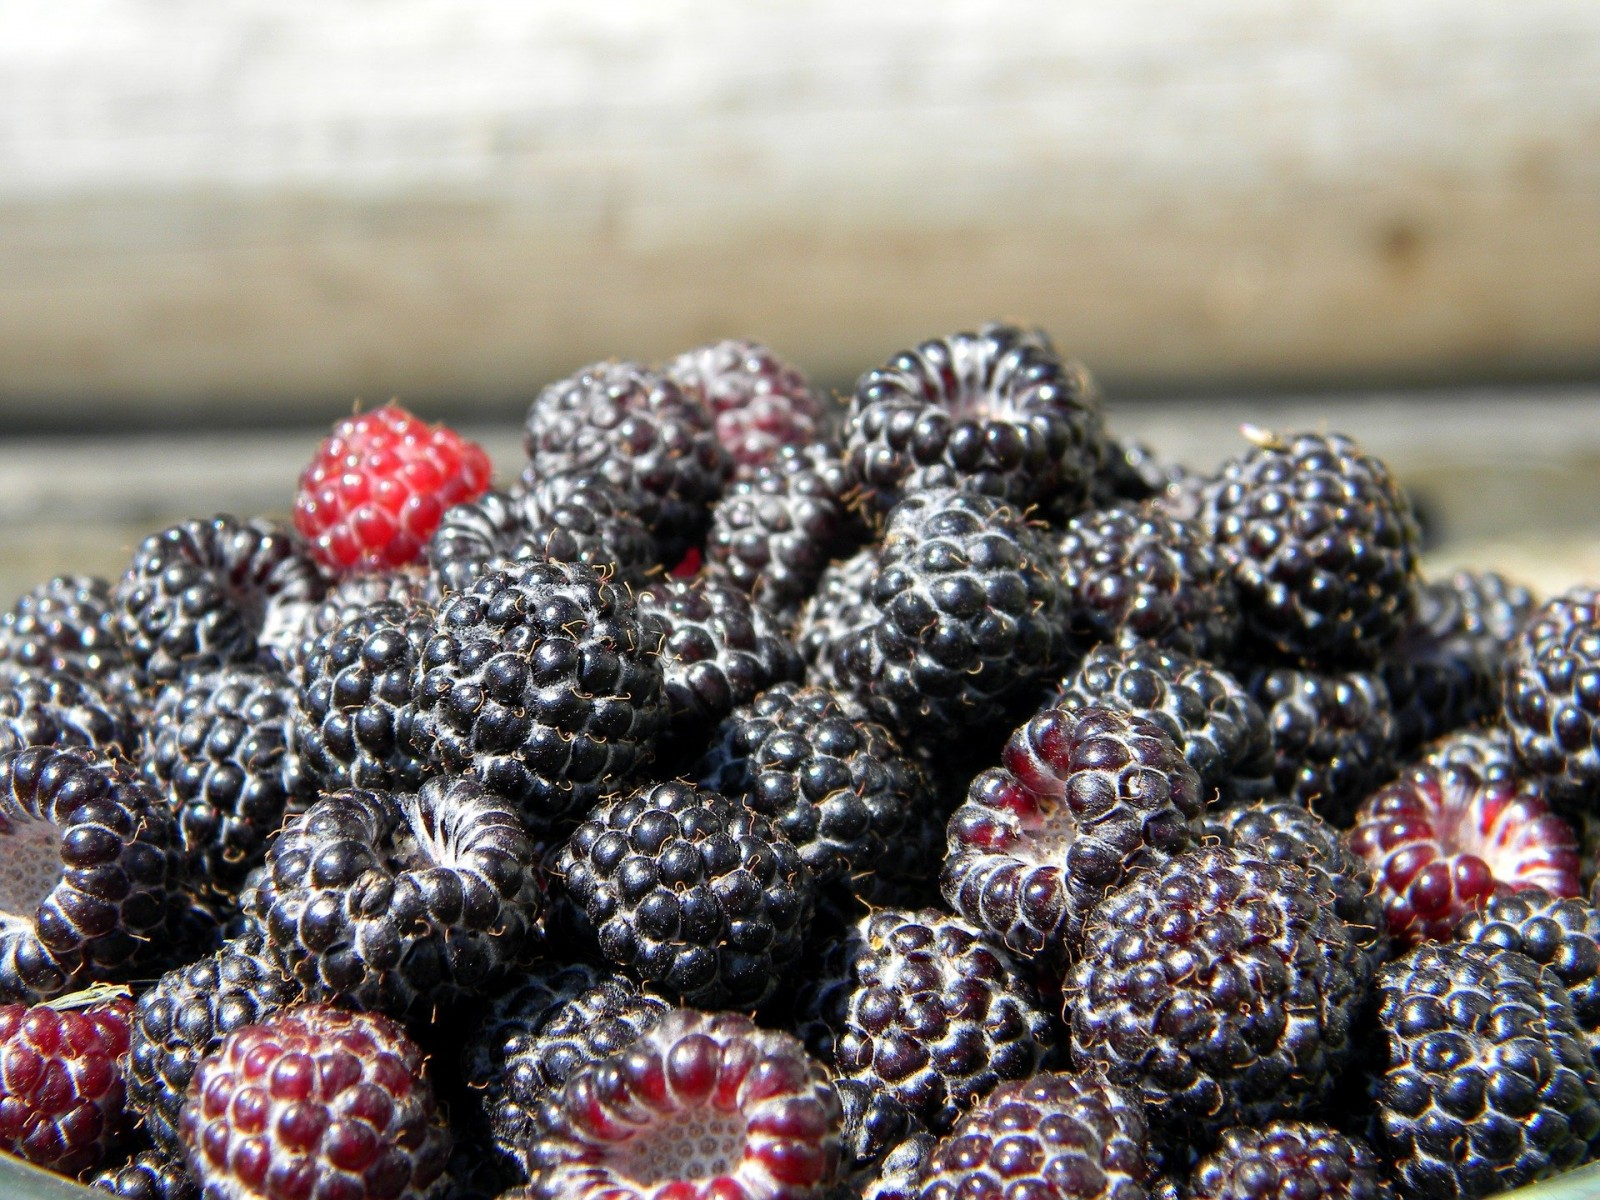 A new study shows eating black raspberries reduces skin inflammation associated with allergies in mice.